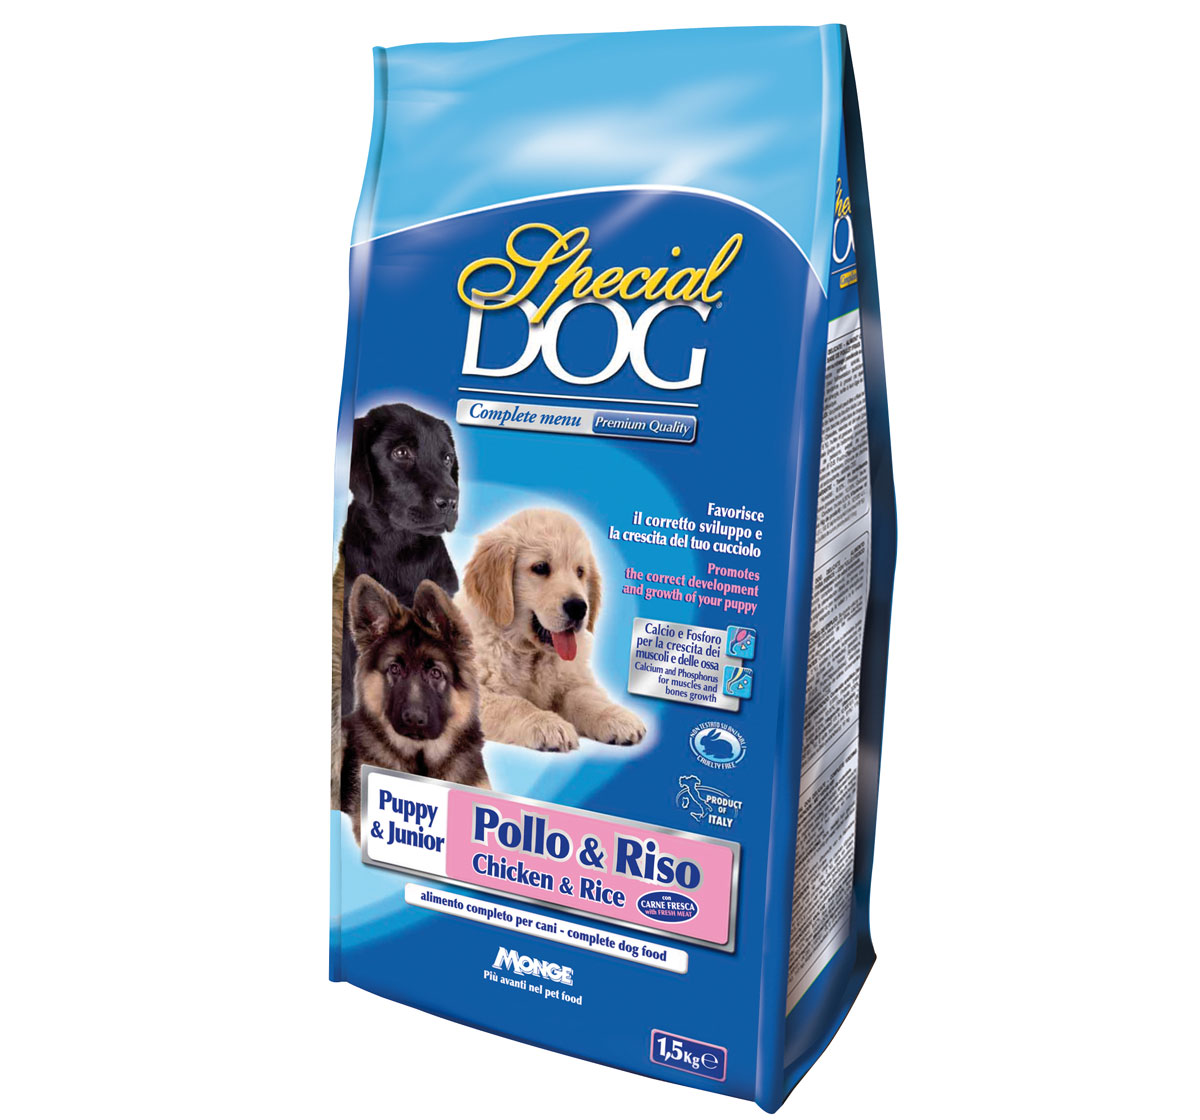 Dog Food Delivered To Your Home